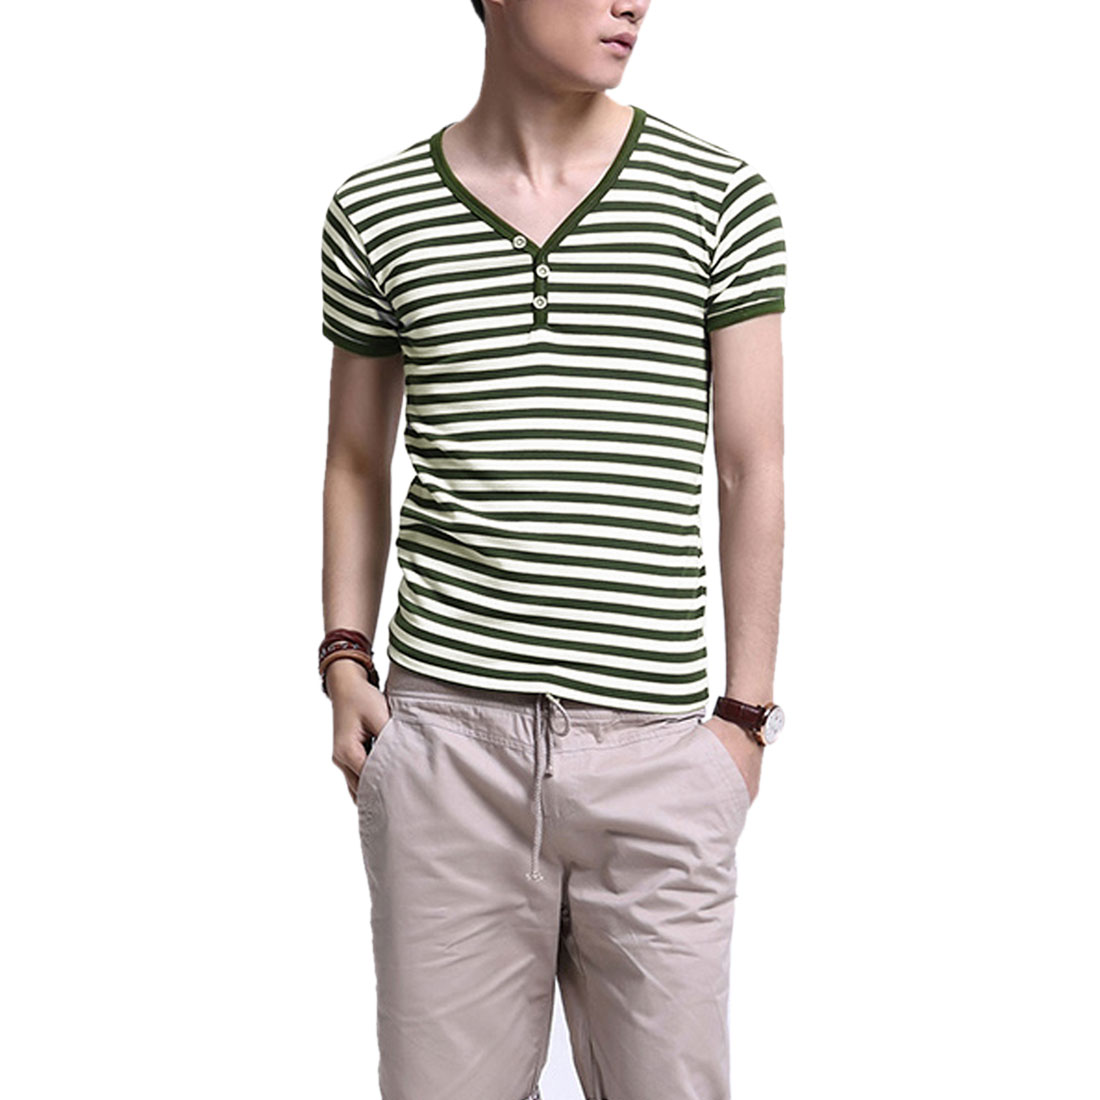 Men Stylish Striped Prints Stretch Short-sleeved Shirt Olive Green S